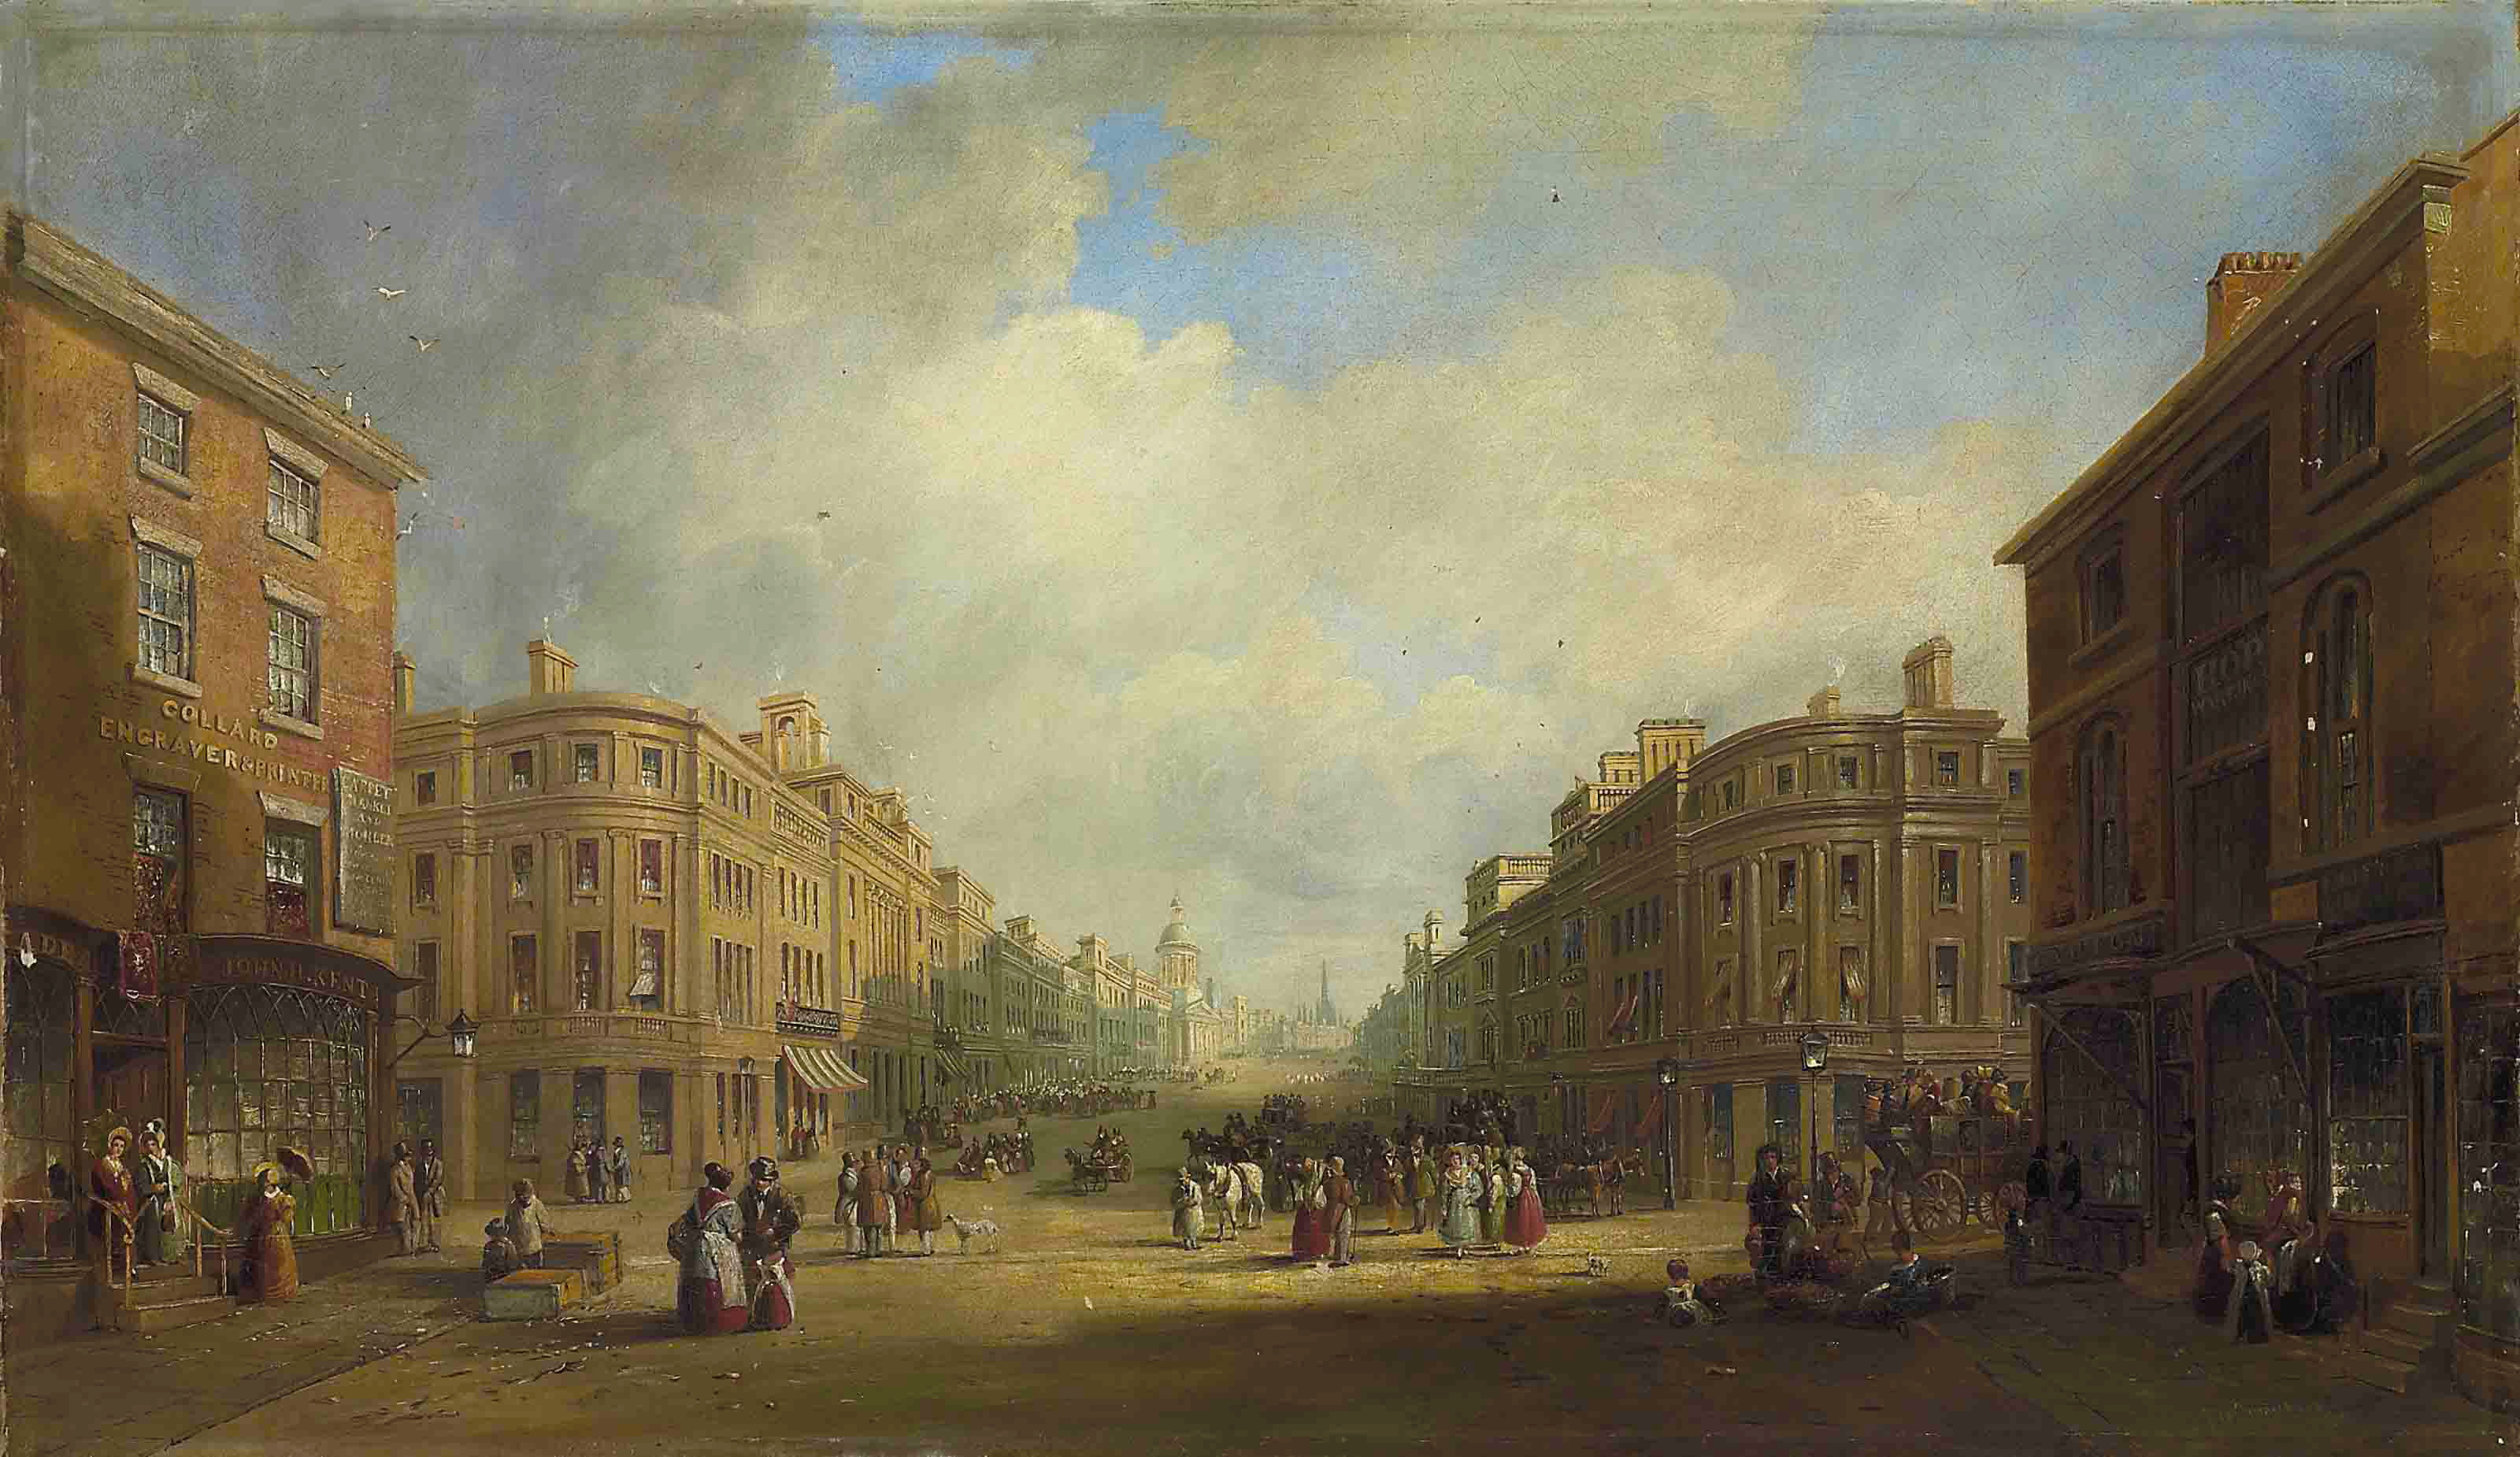 John Wilson Carmichael, 'Proposed new street for Newcastle', 1831. Purchased with the aid of a grant from the MLA/V&A Purchase Grant Fund, 2010.